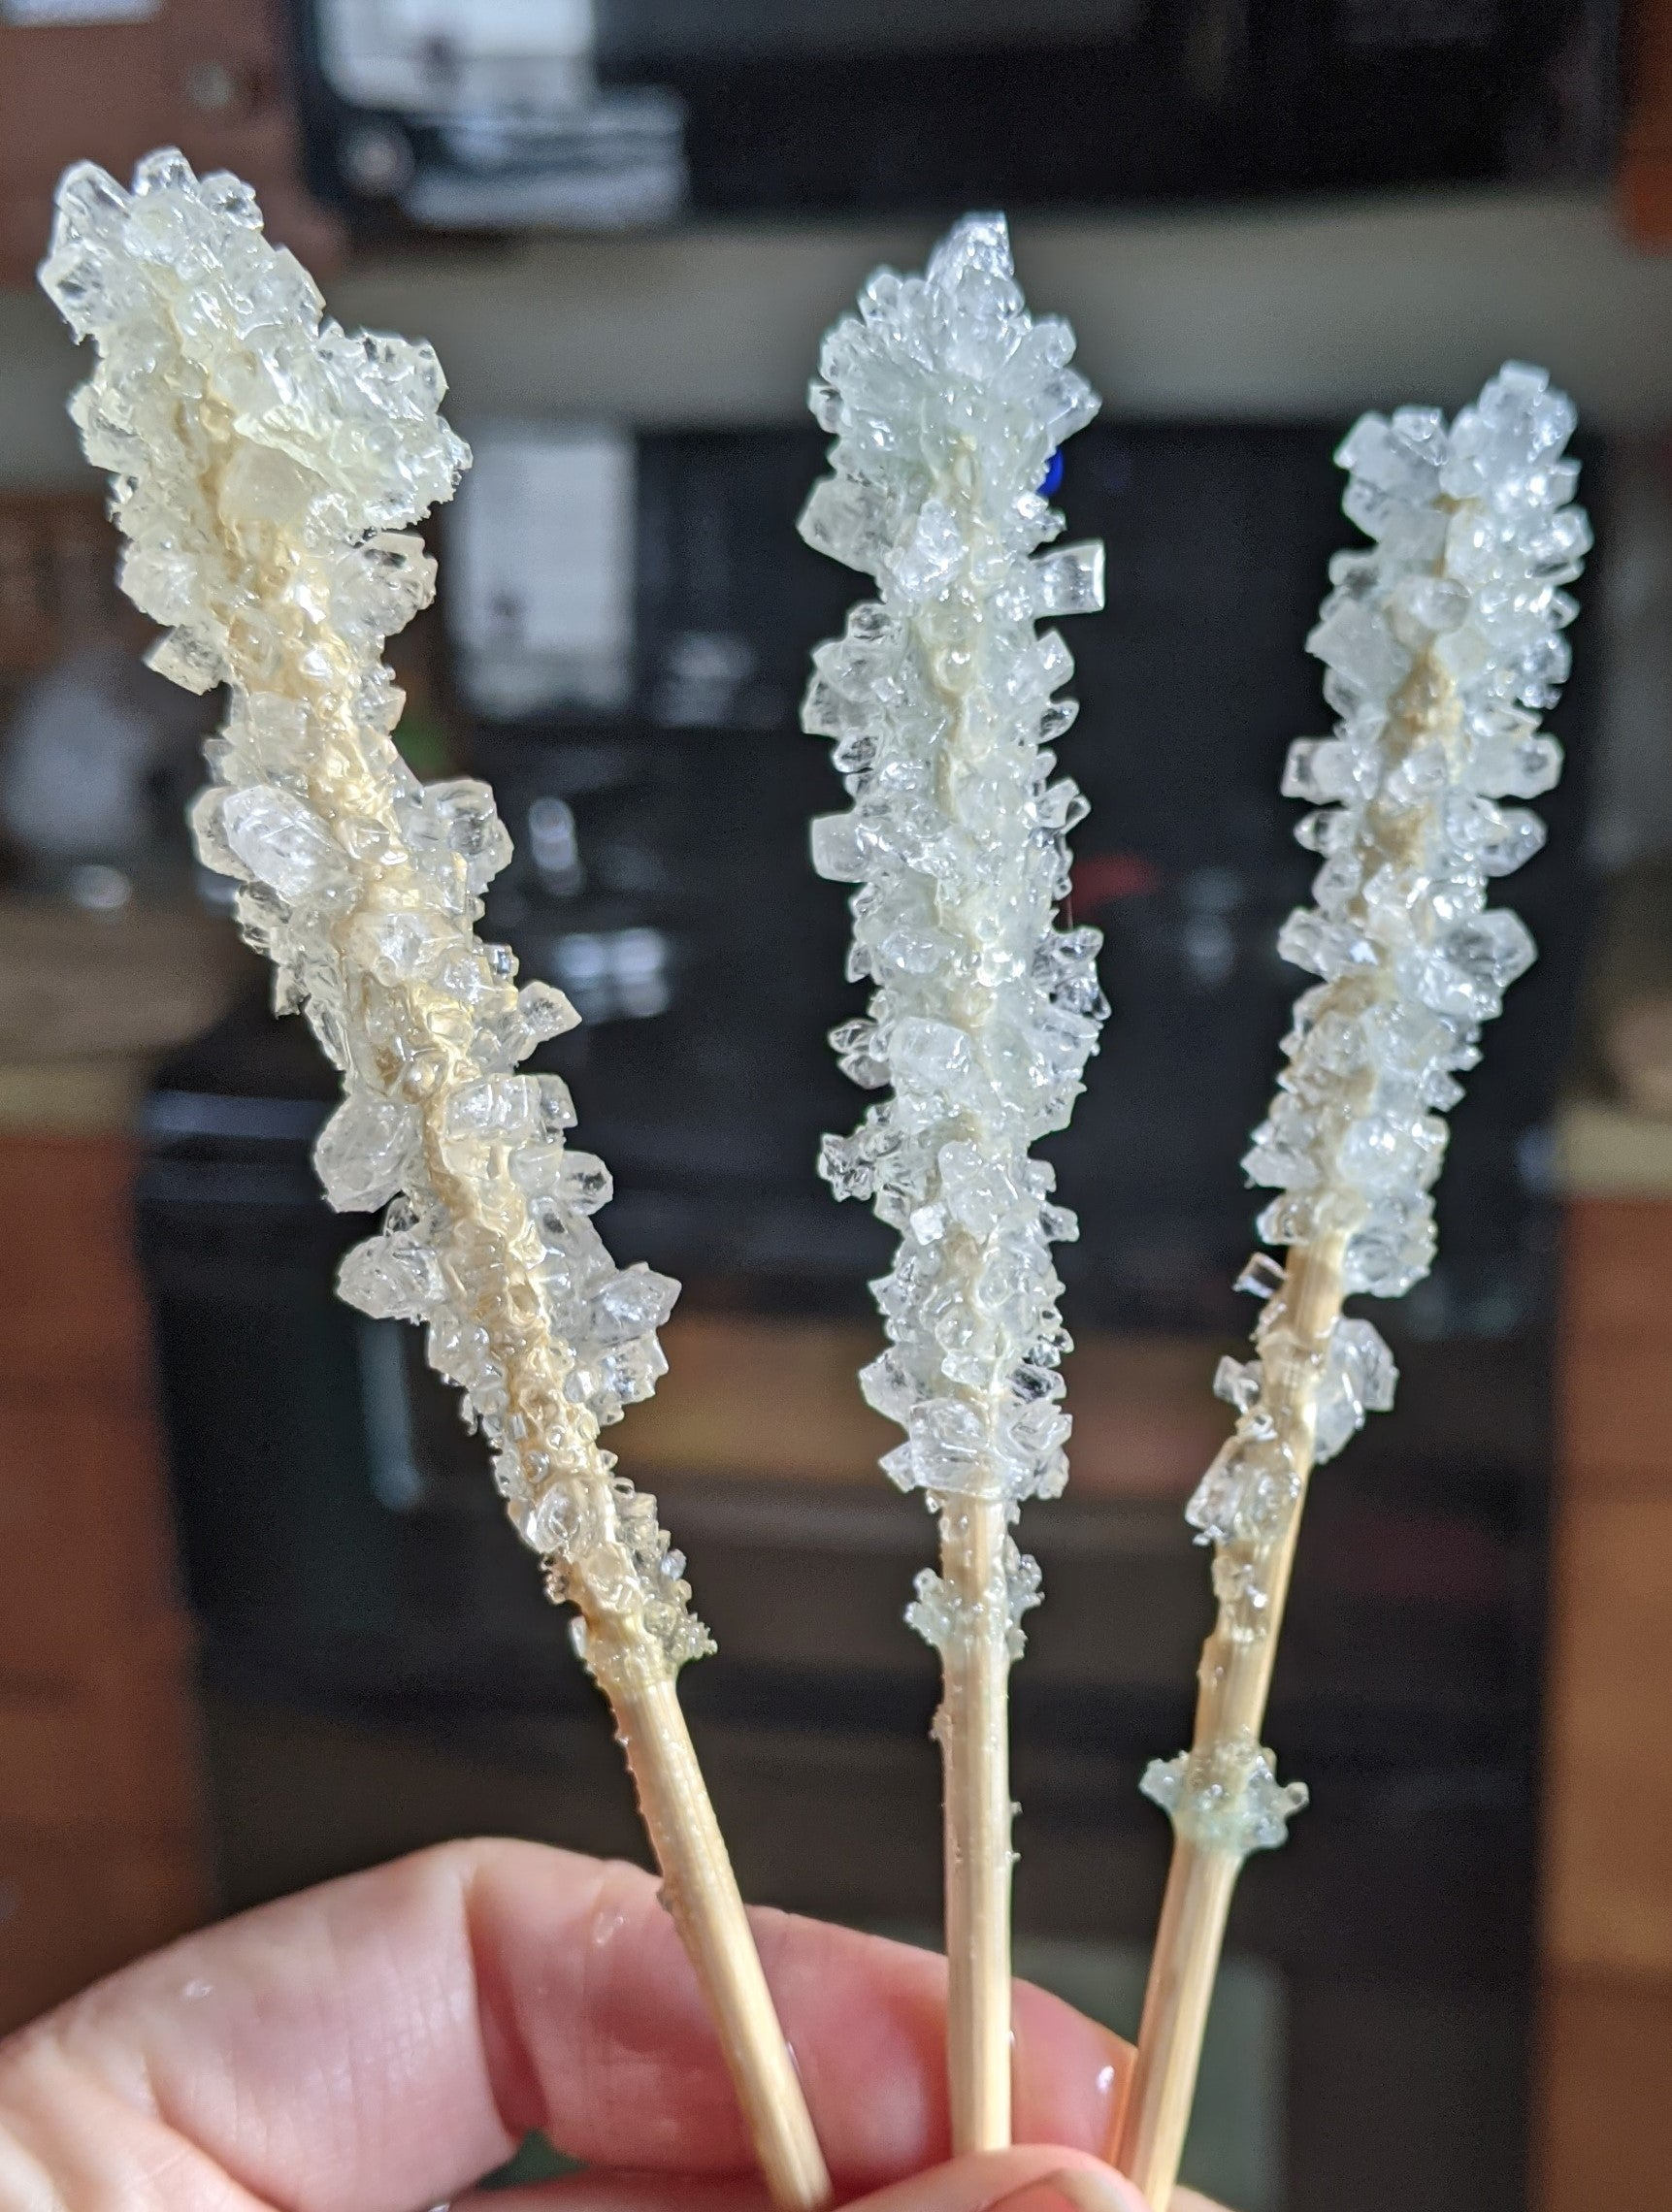 white rock candy crystals | Yellow Scope